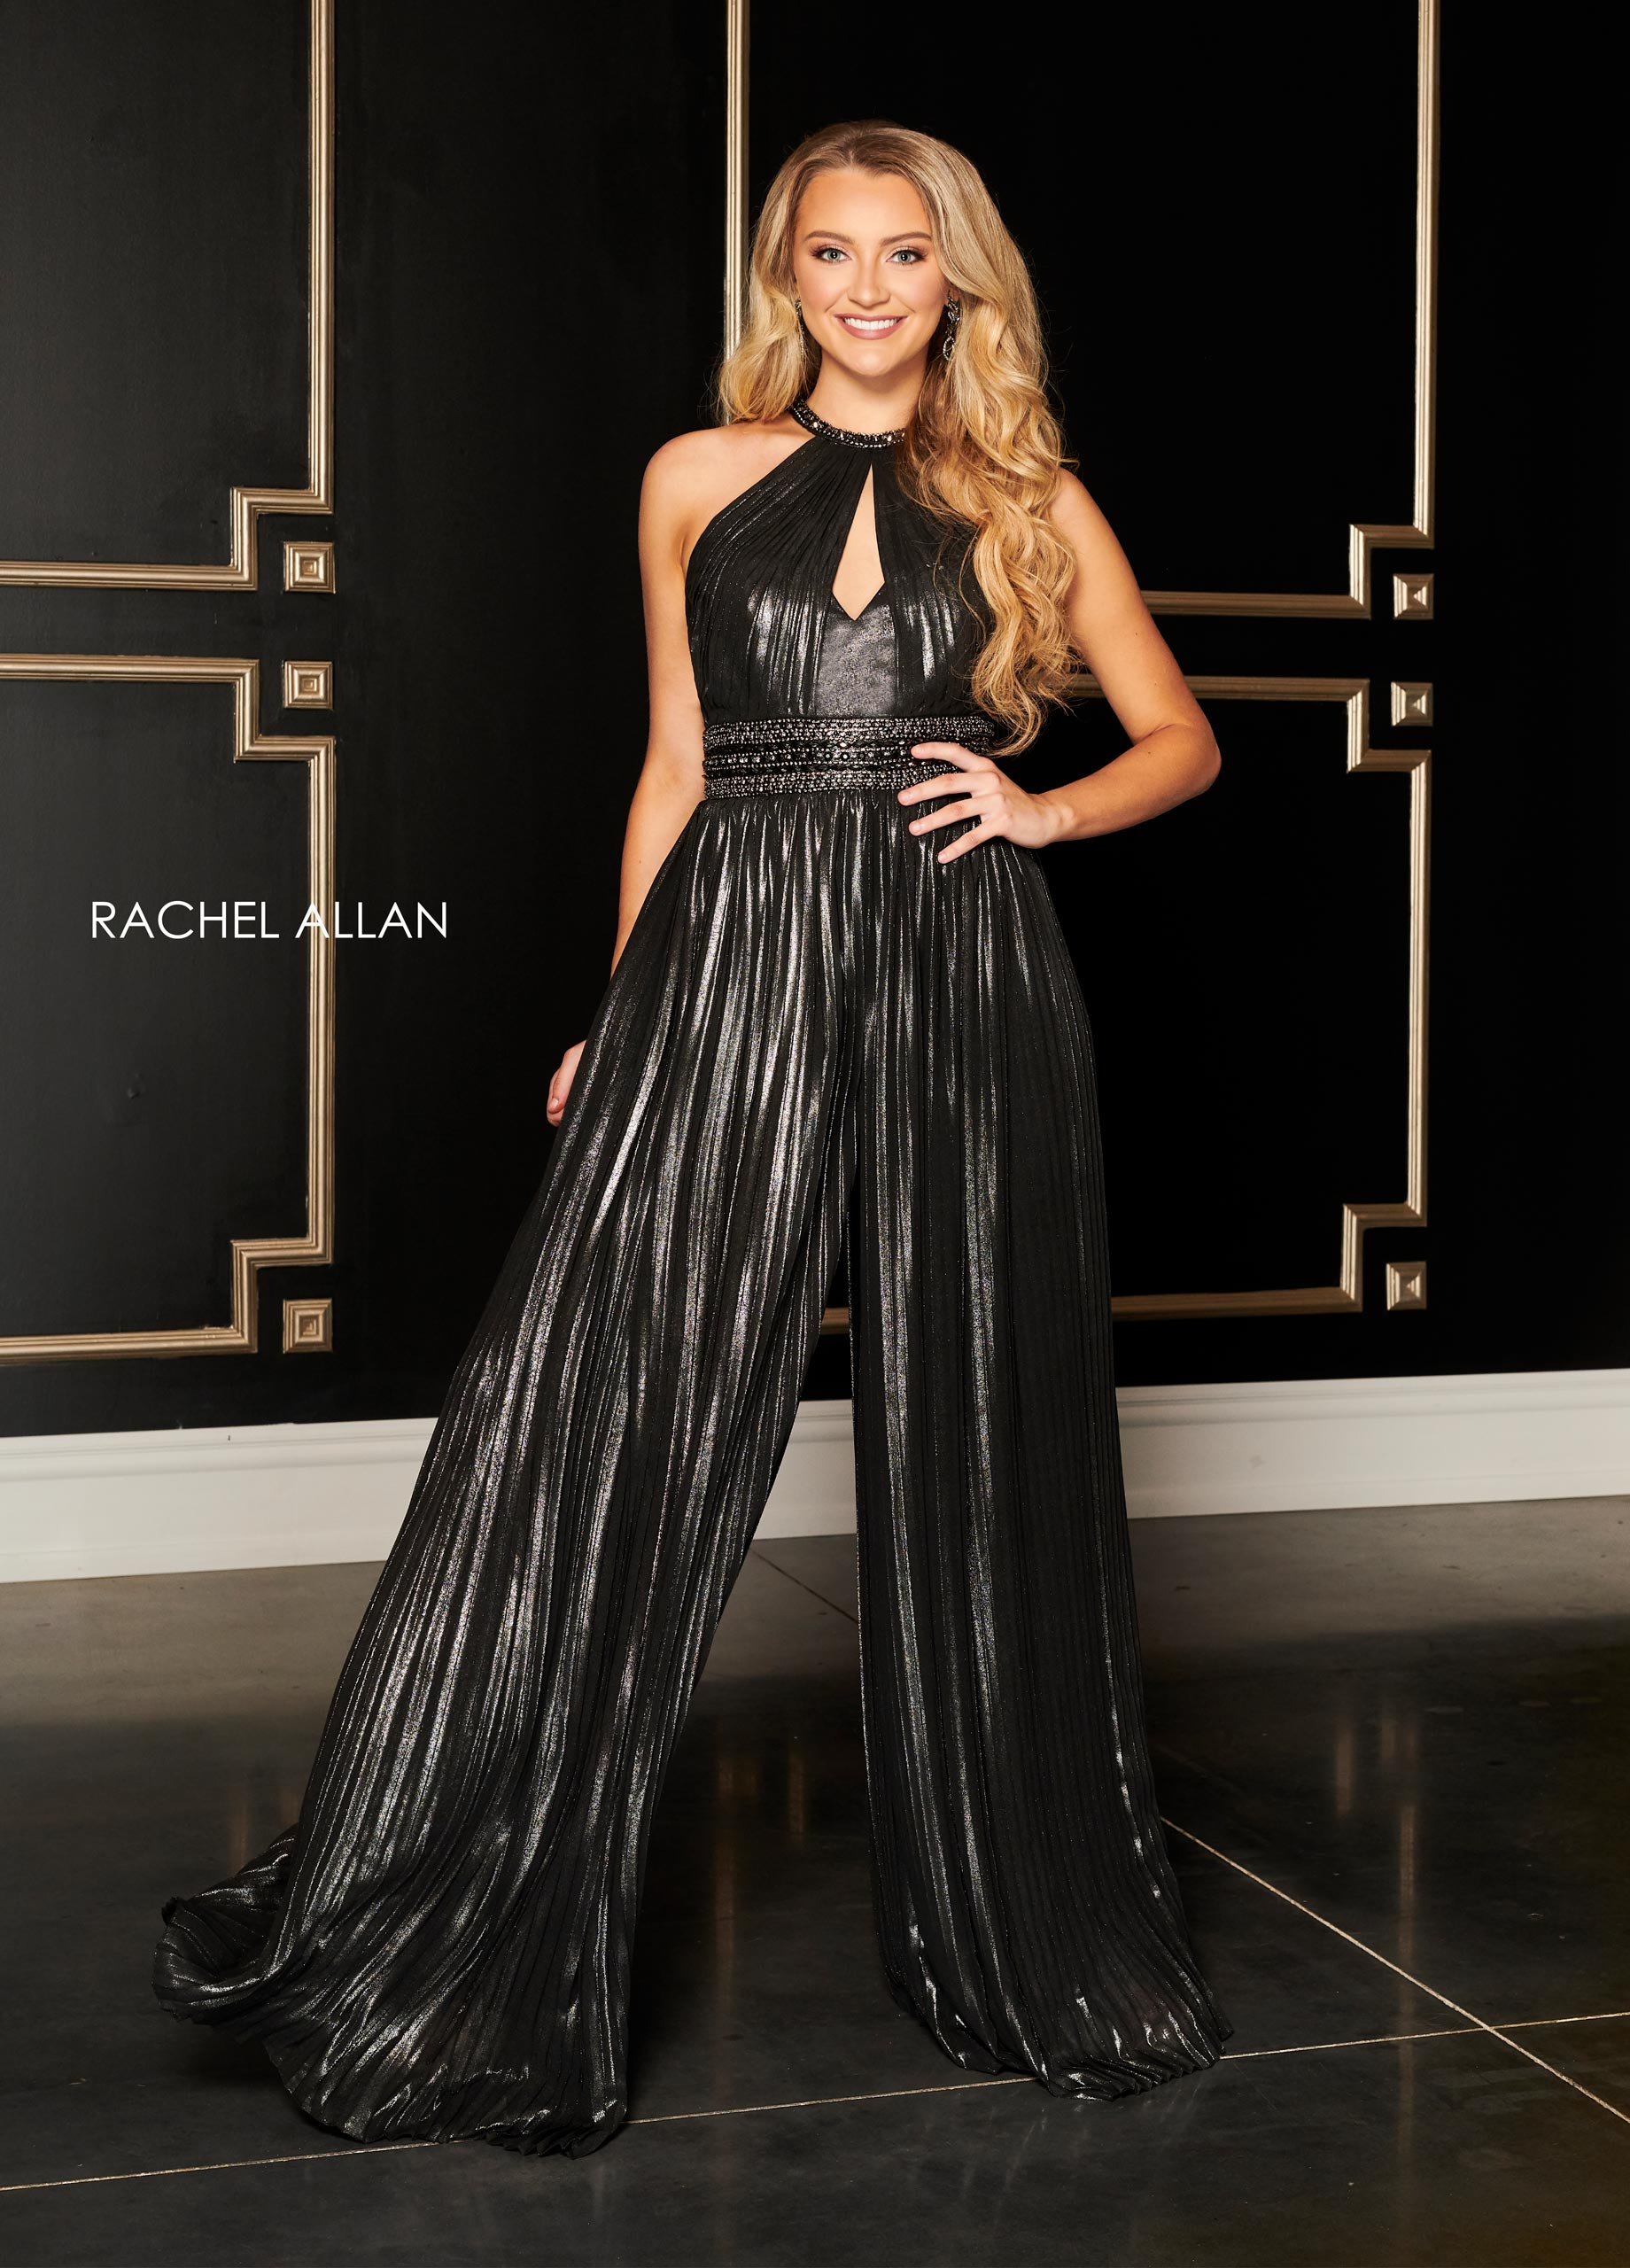 Beaded Jumpsuit Cocktail Dresses in Black Color